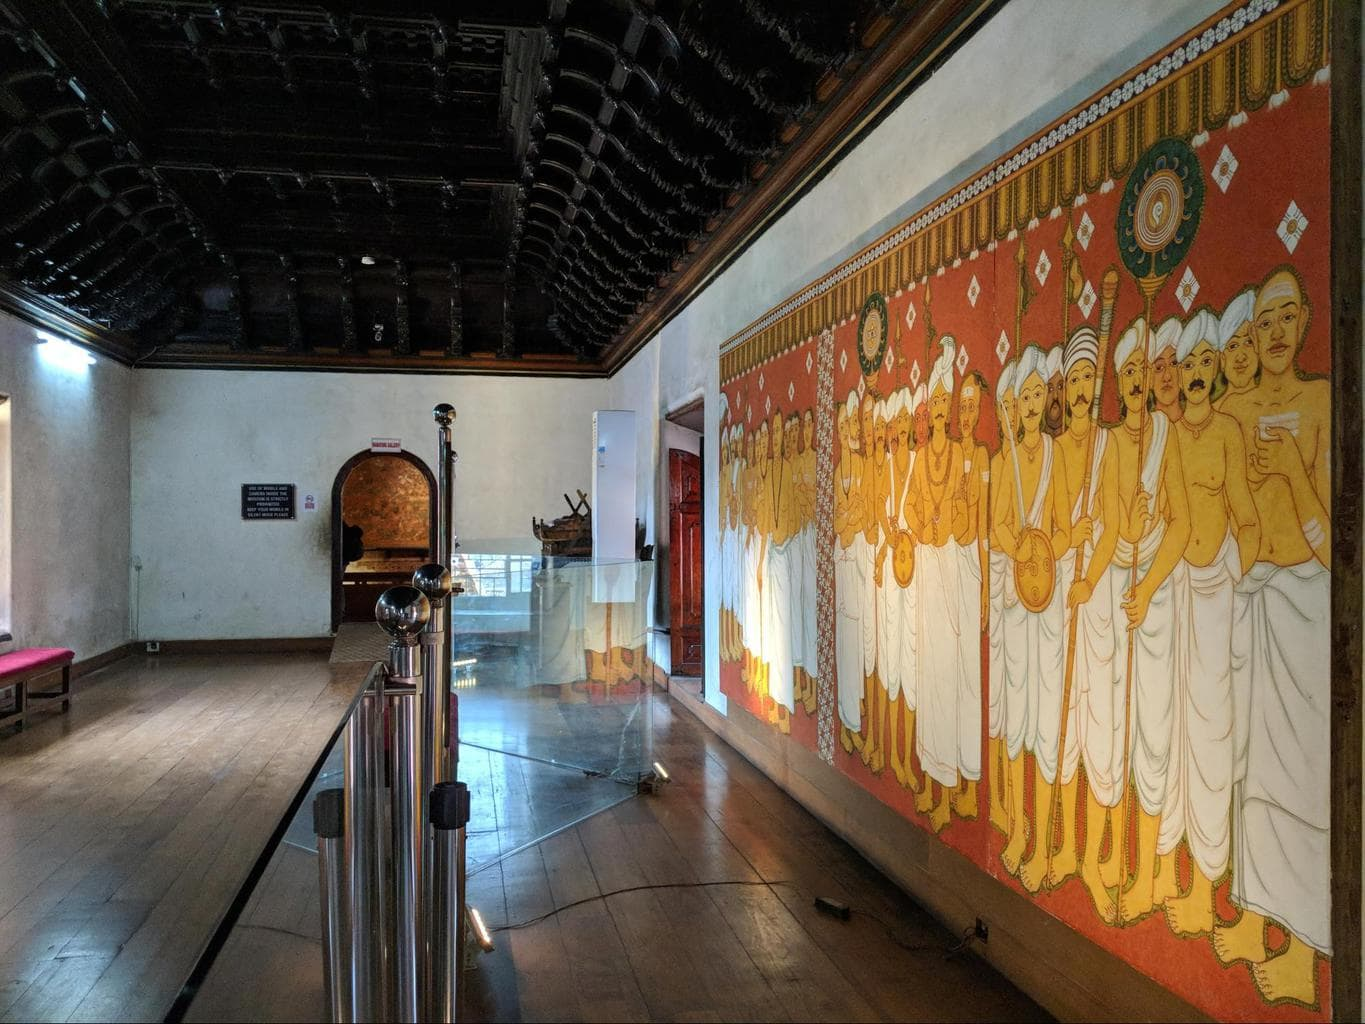 The murals inside Mattancherry Palace